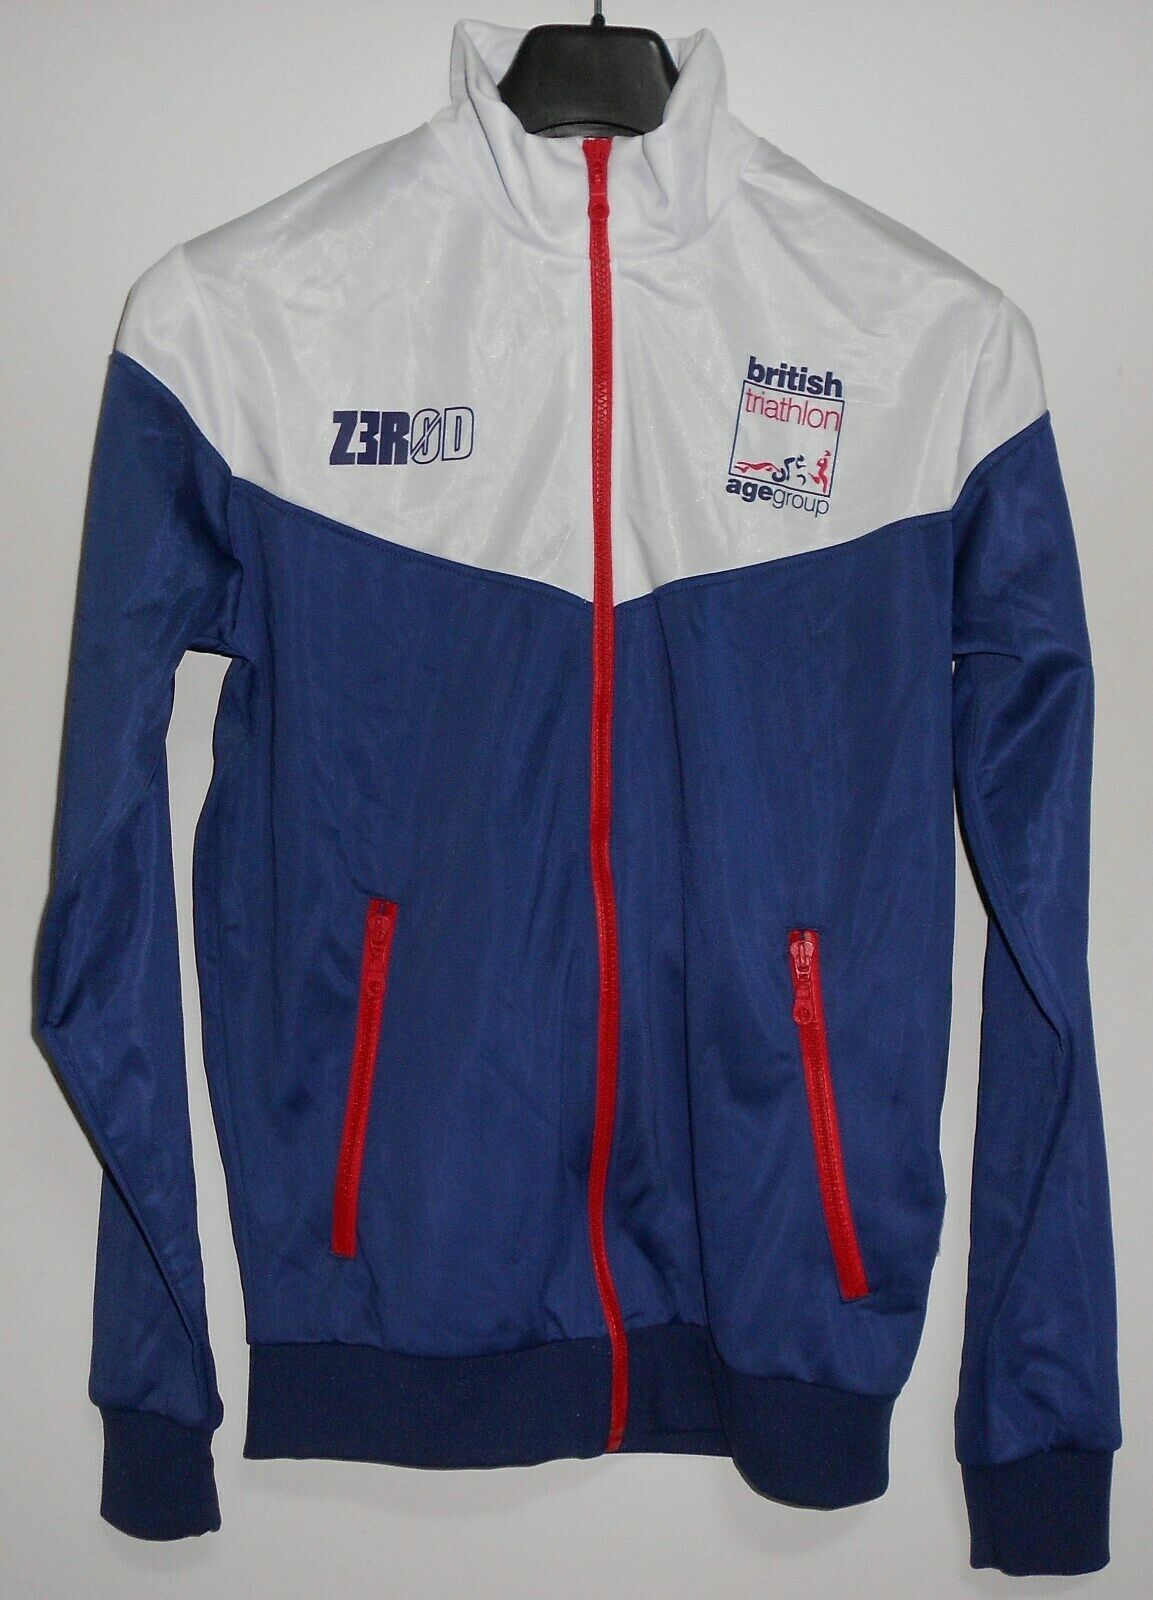 Team GBR Jacket Z3R0D Zerod ELITE & AGE GROUP BRITISH TRIATHLON Size Medium NEW